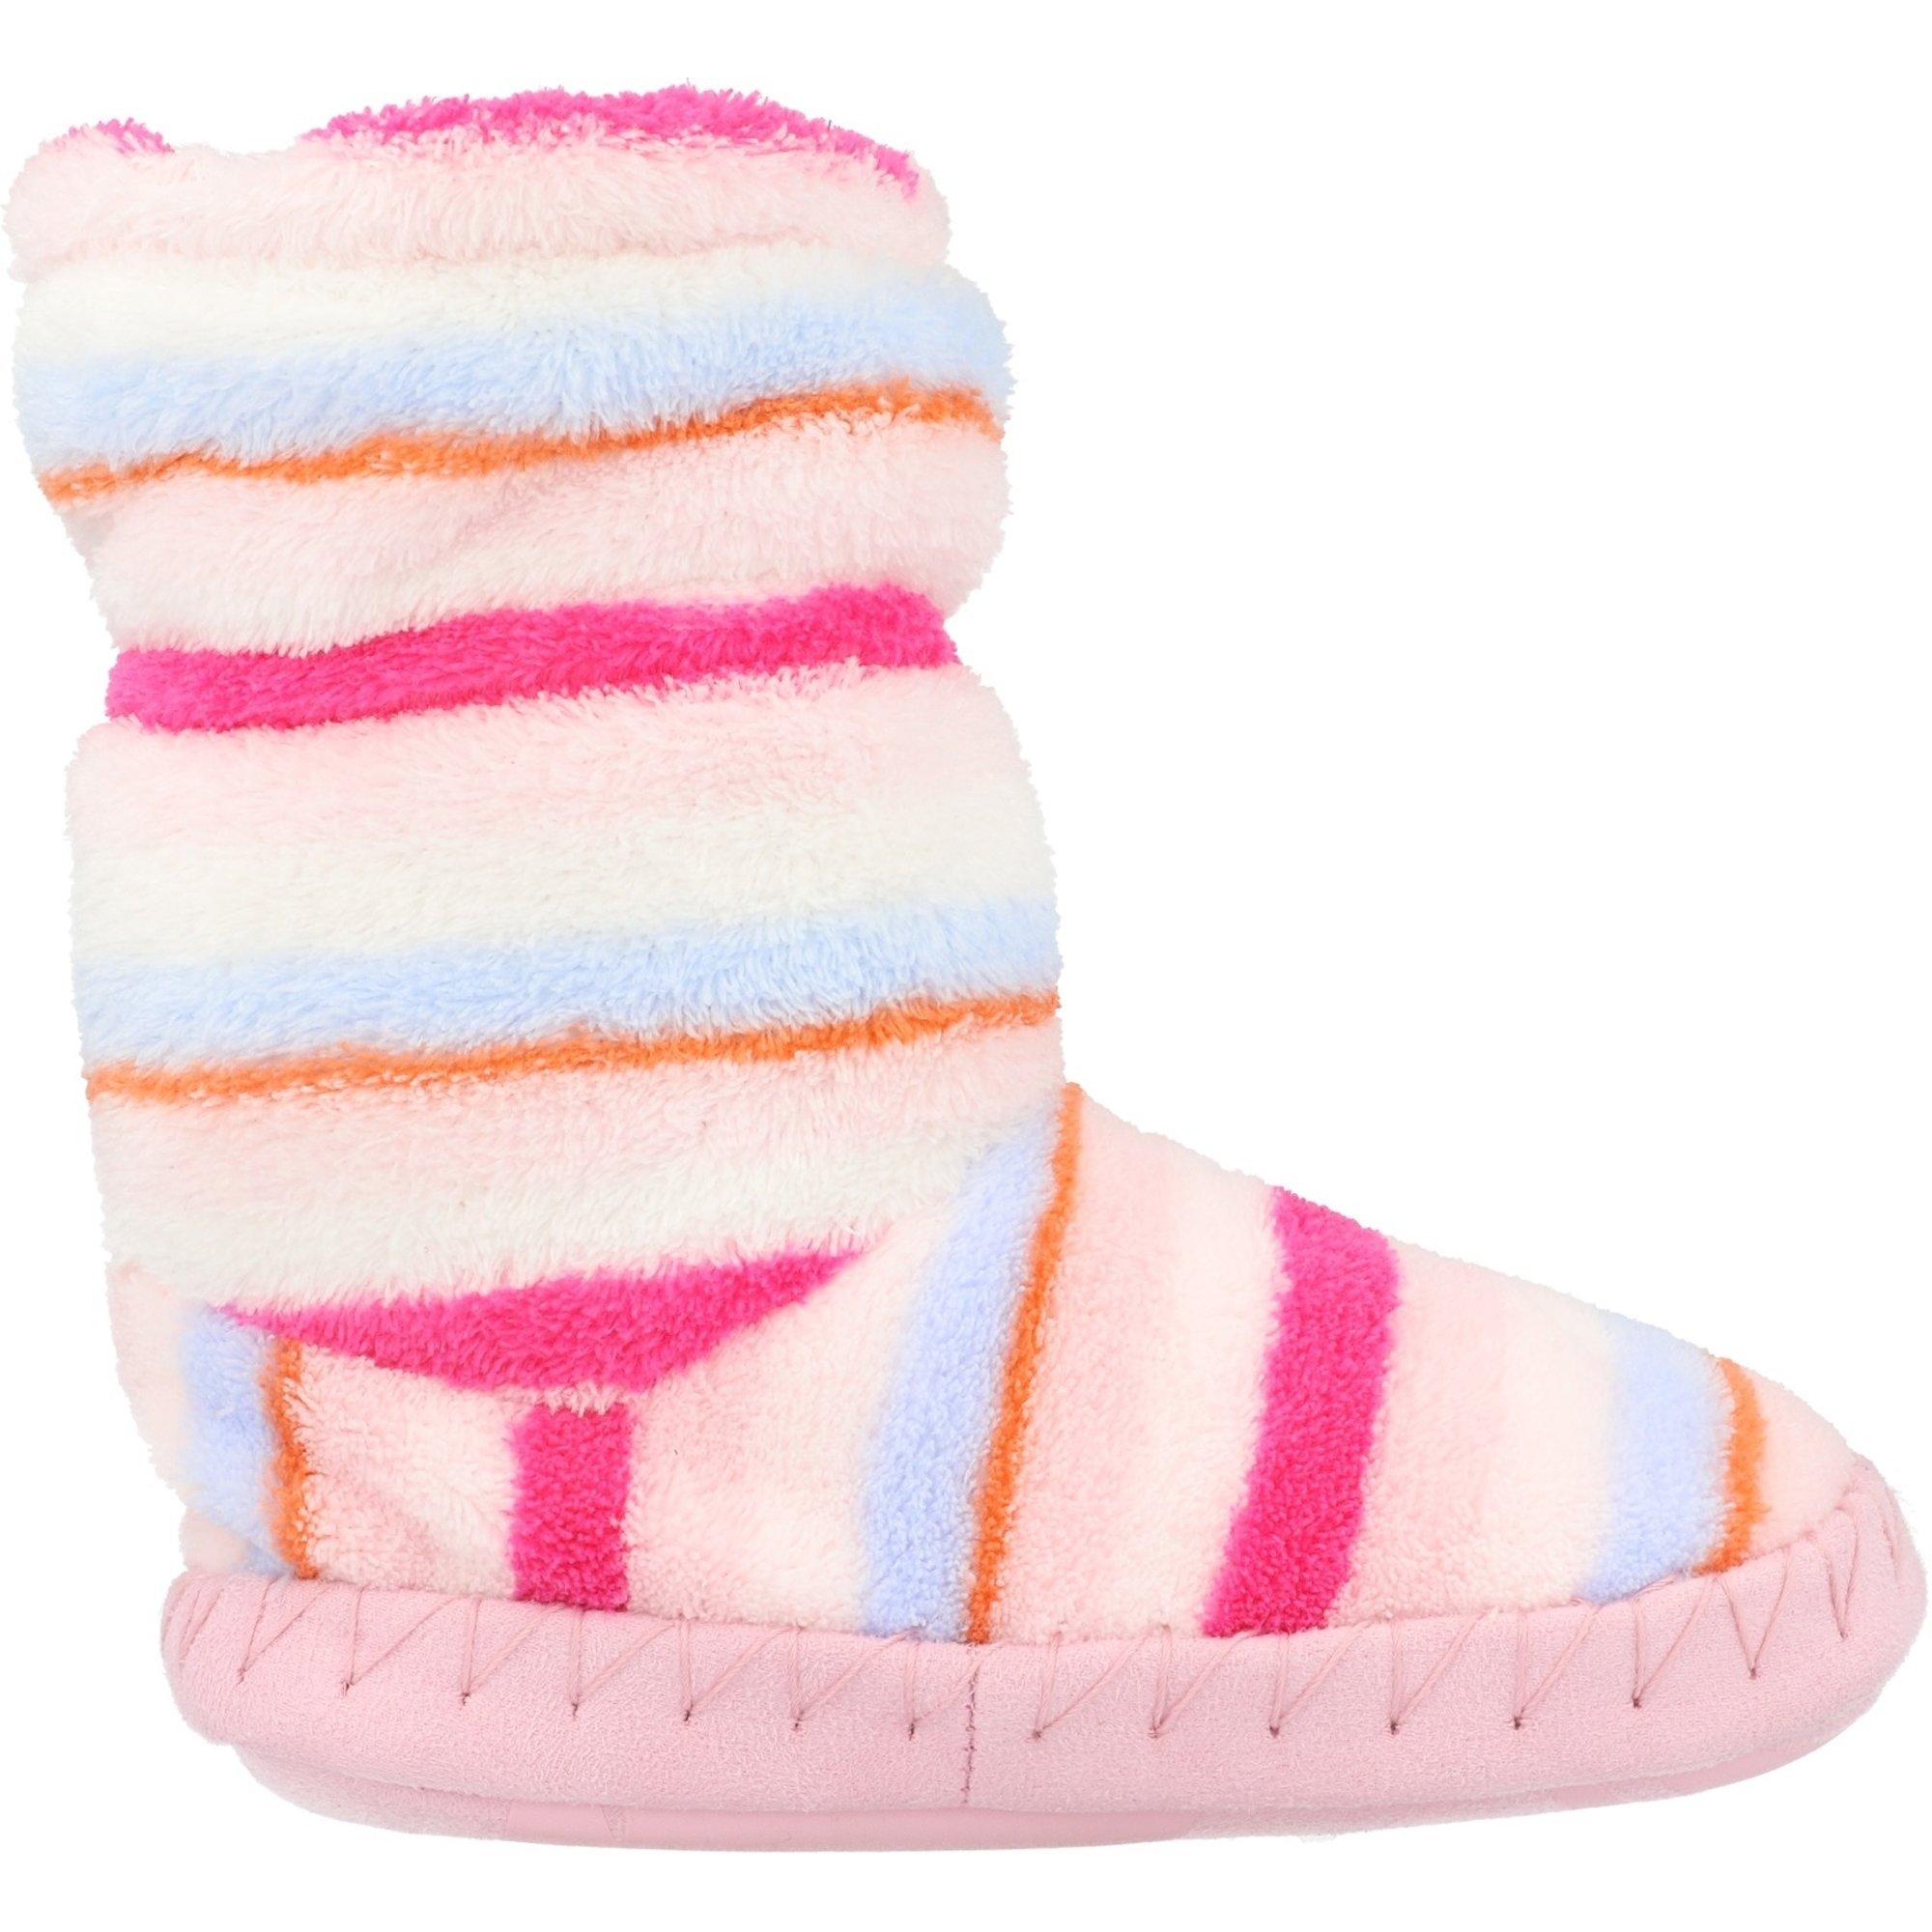 Joules Jnr Dreama Unicorn Slippers X